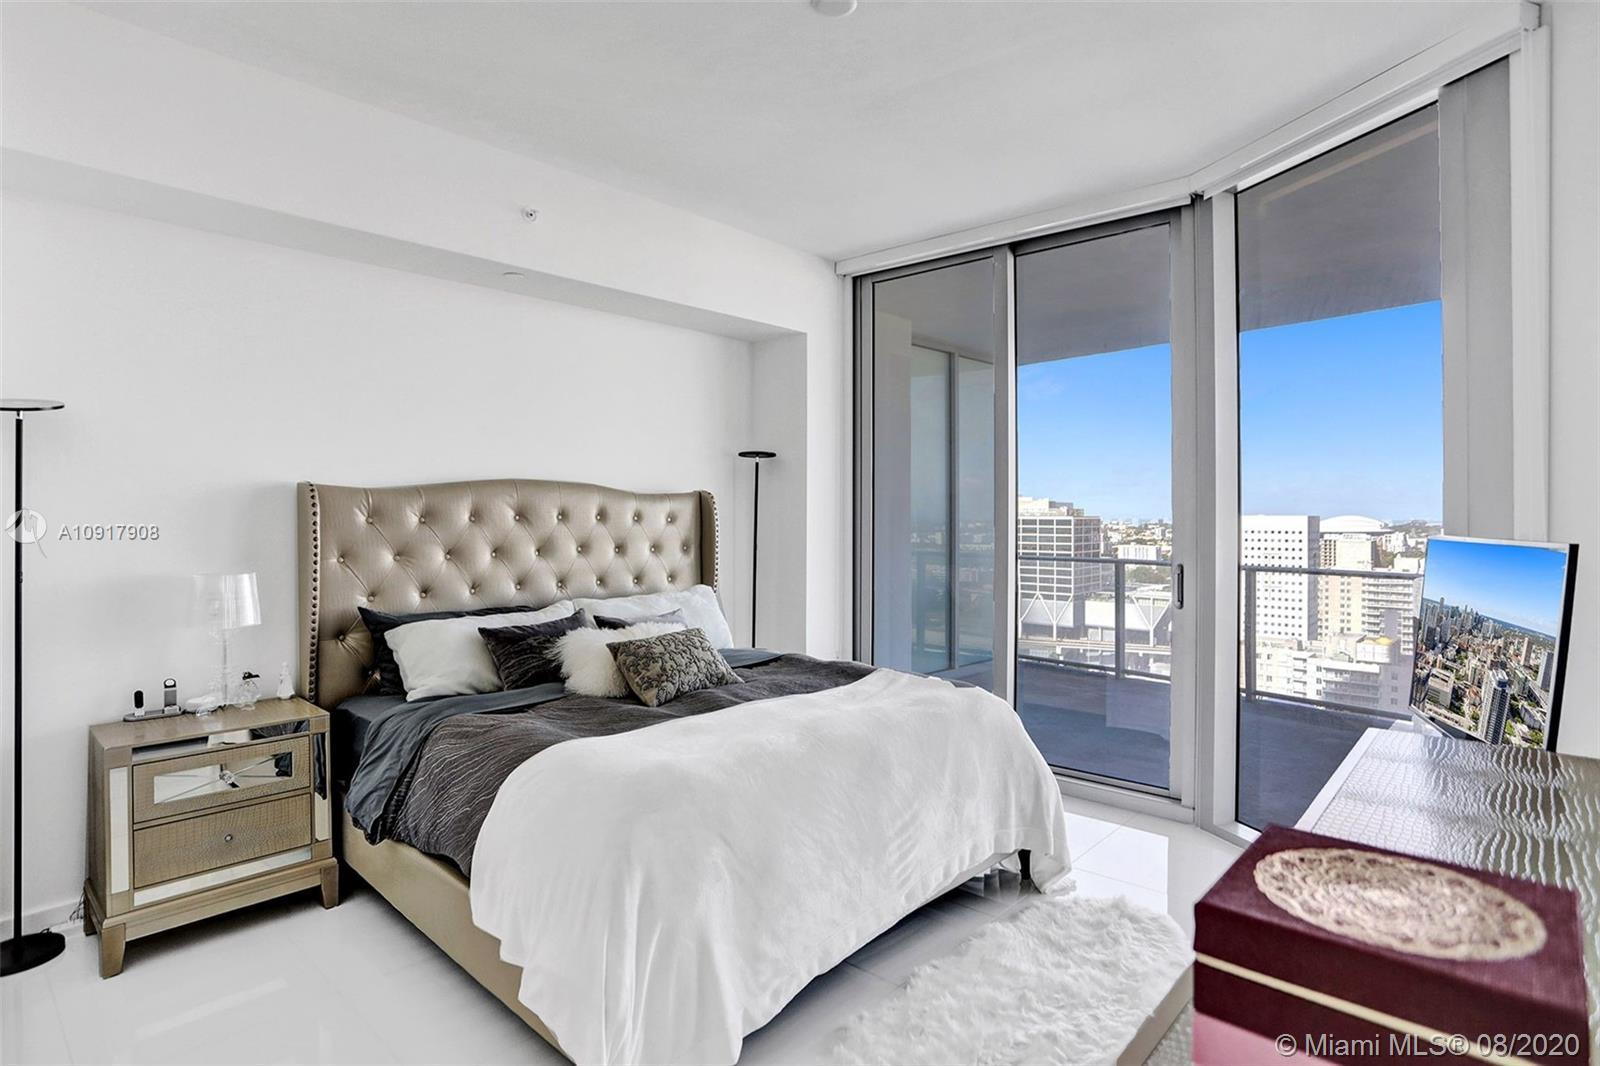 LISTED FOR SALE. Spacious 1 Bedroom / 2 Bathrooms + DEN in famous PARAMOUNT WORLD CENTER. 1,491 SQ F